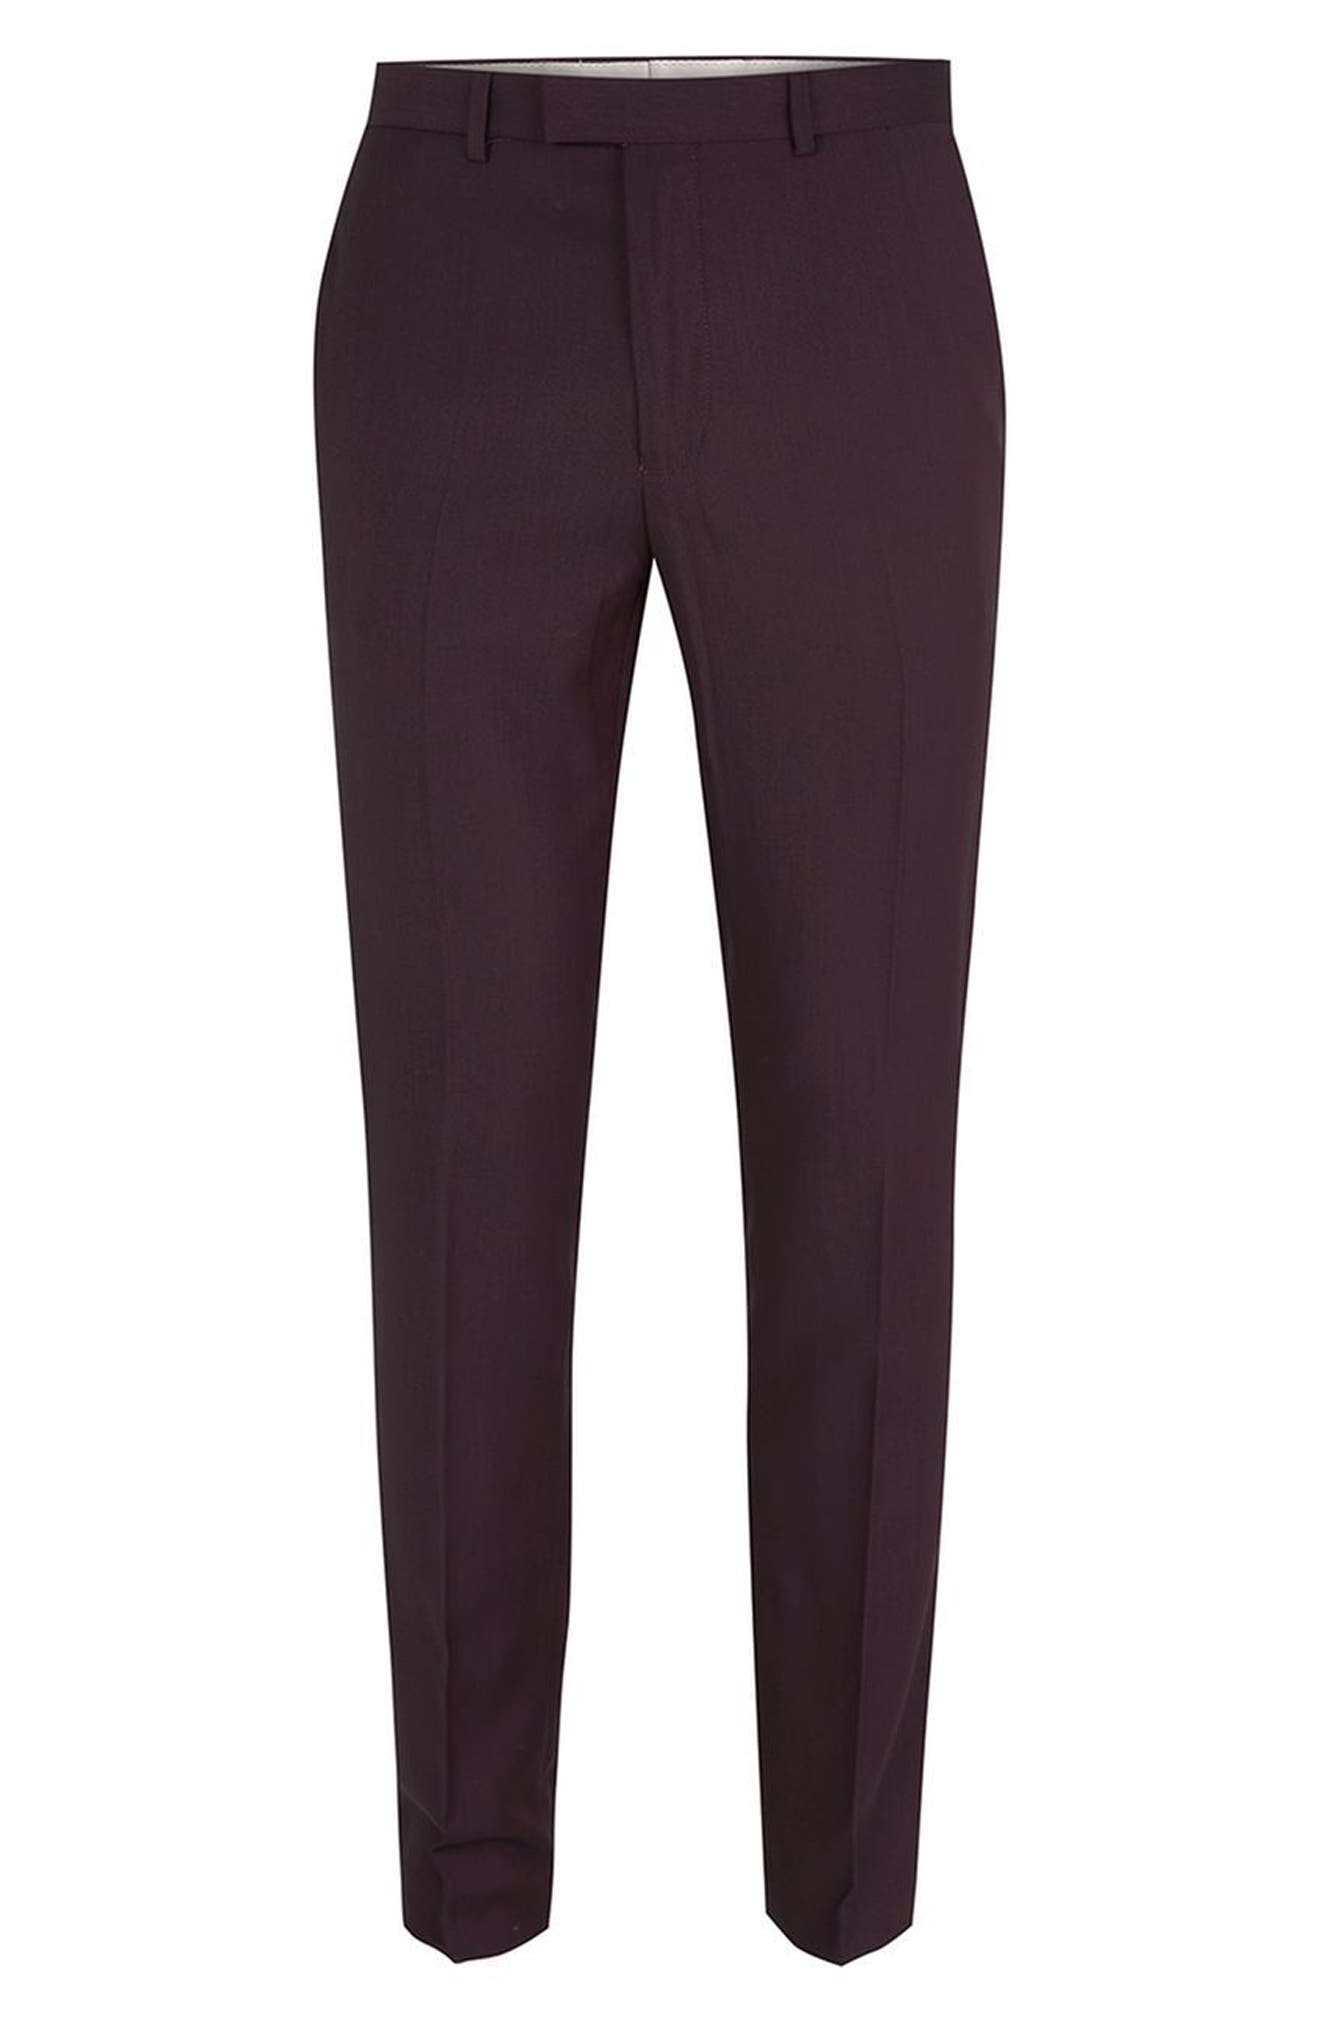 Skinny Fit Plum Suit Trousers,                             Alternate thumbnail 5, color,                             Plum